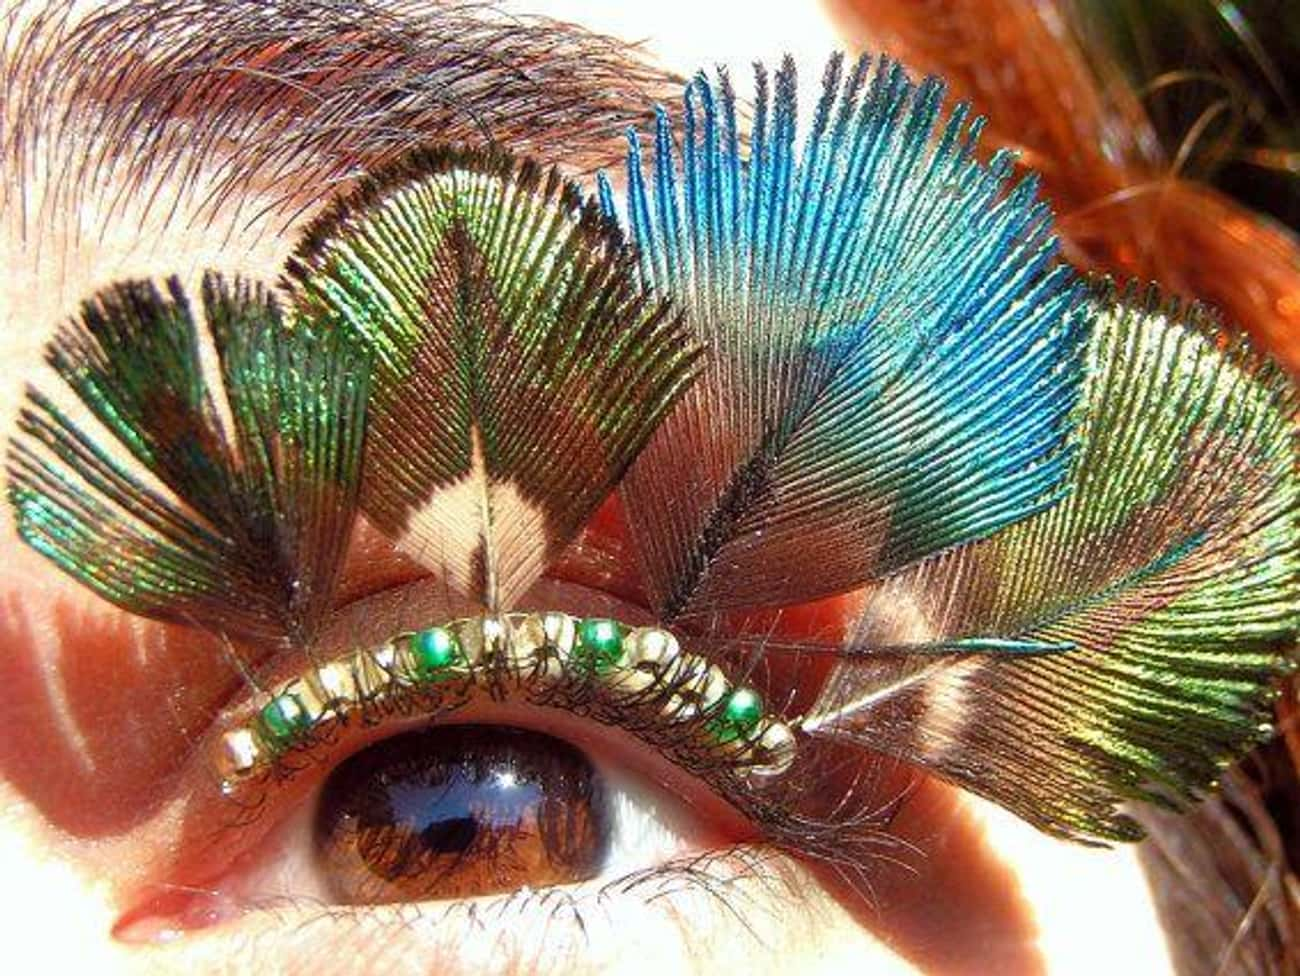 Pimp Those Peacock Lashes is listed (or ranked) 1 on the list People Are Gluing Objects To Their Eyelids For The Perfect Instagram Photo